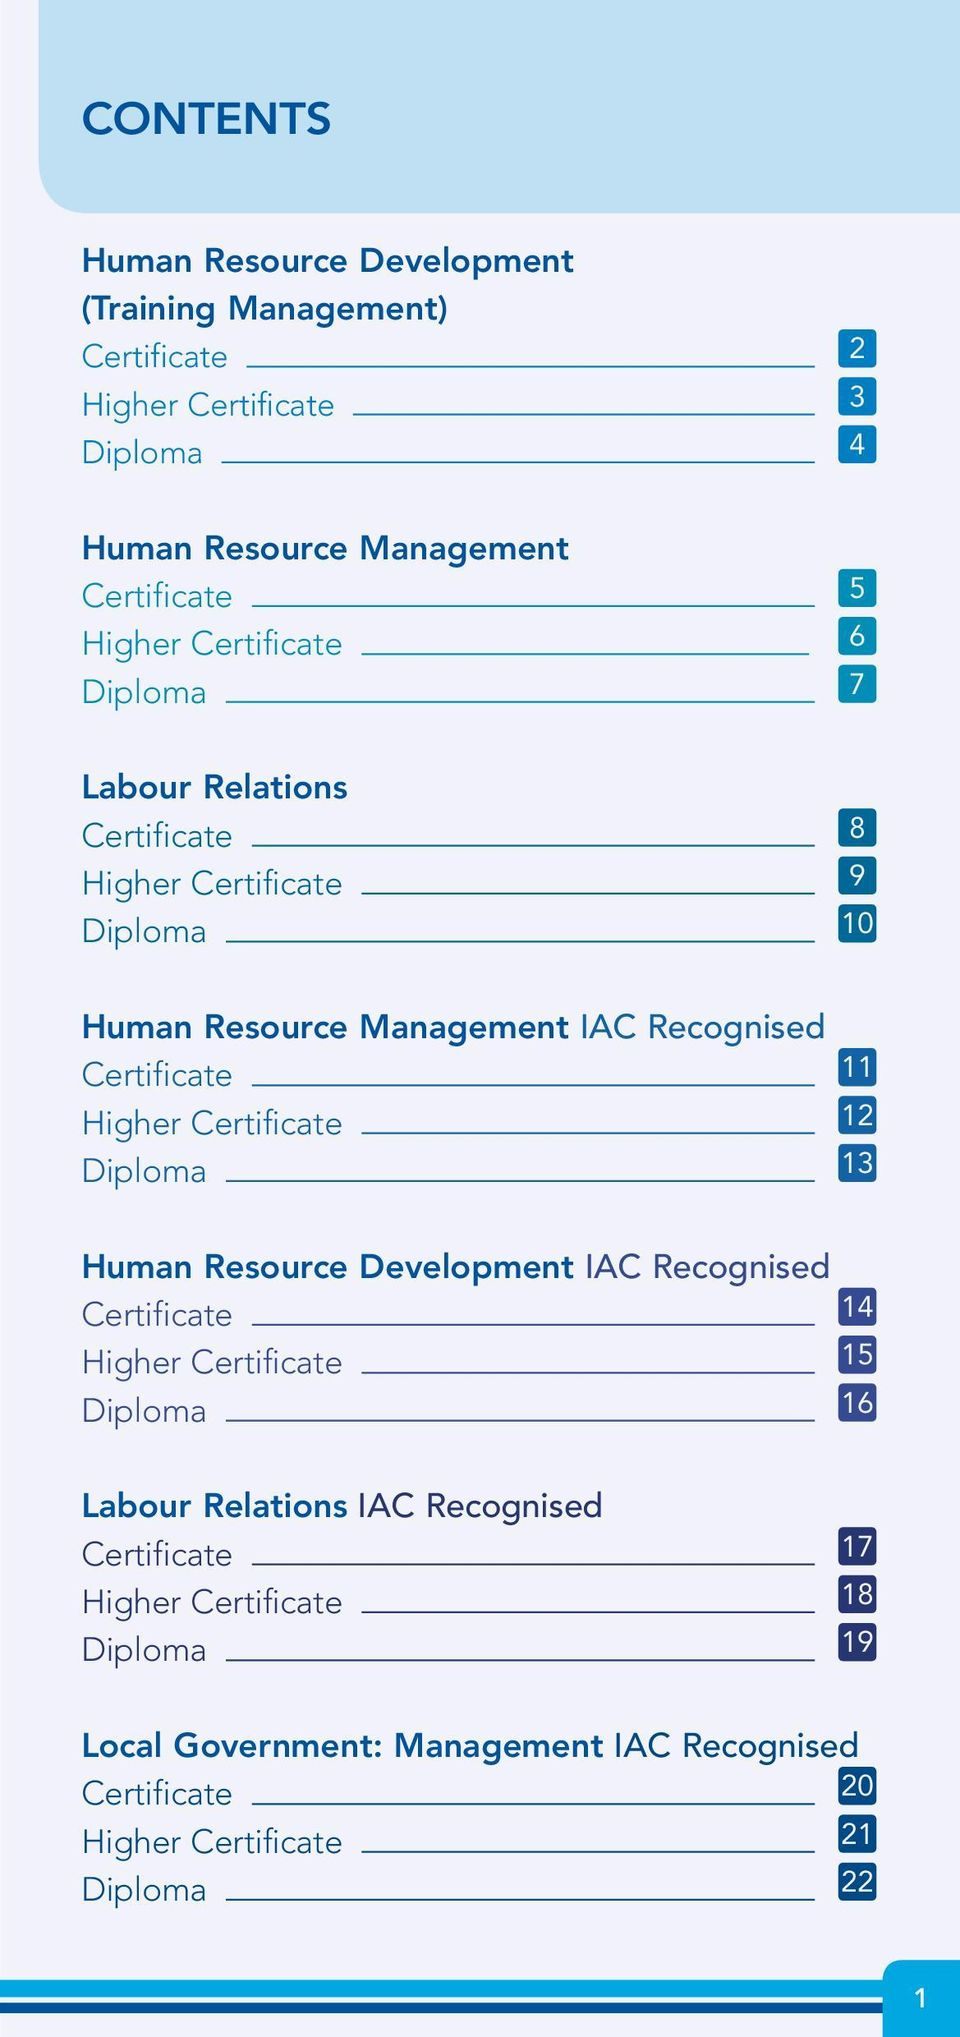 11 Higher Certificate 12 Diploma 13 Human Resource Development IAC Recognised Certificate 14 Higher Certificate 15 Diploma 16 Labour Relations IAC